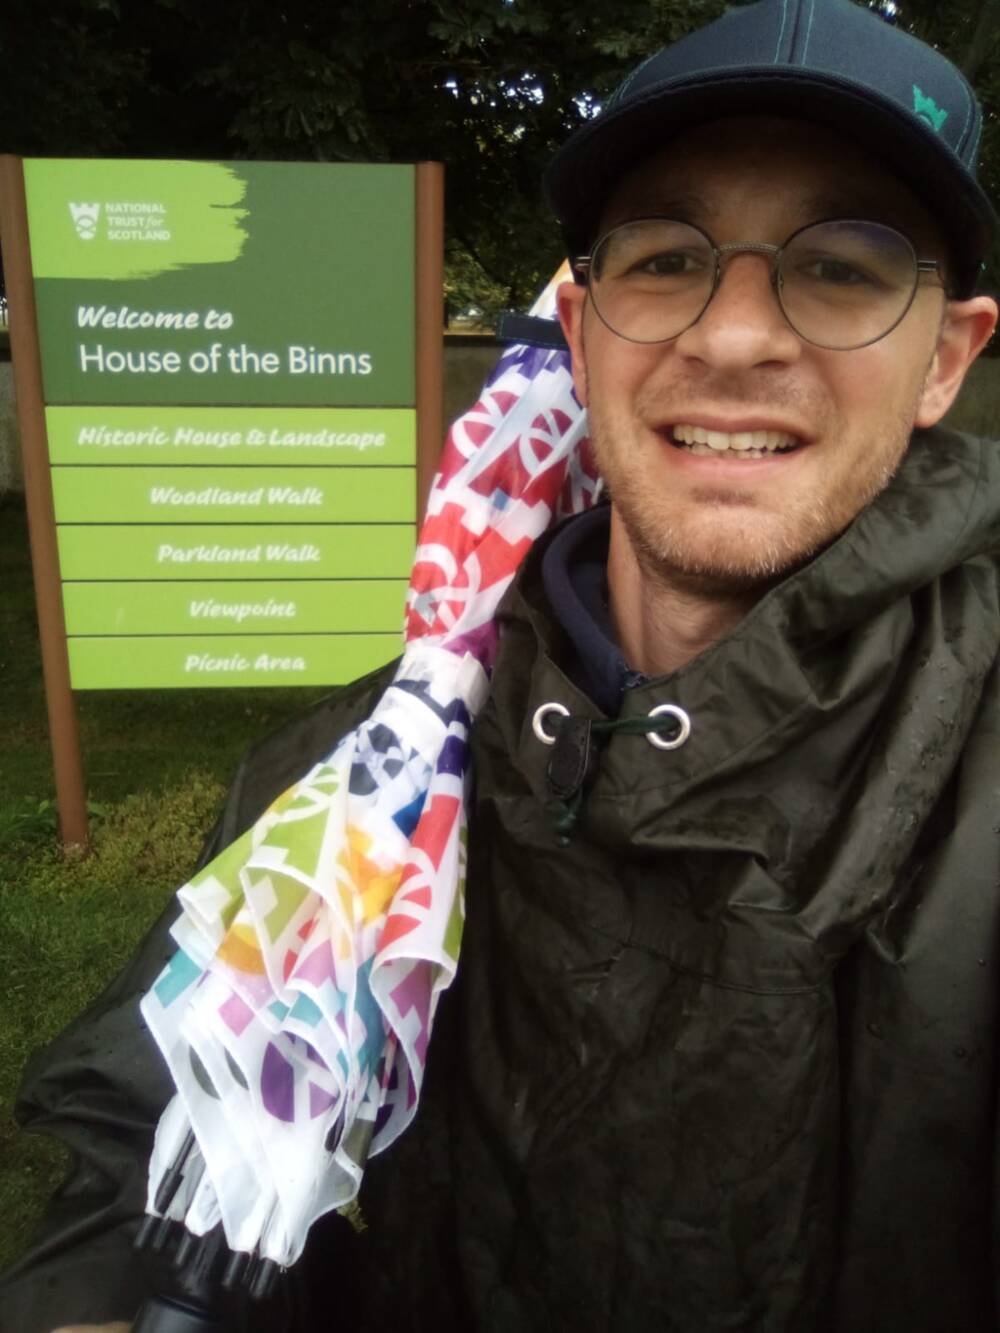 A man is holding a National Trust for Scotland umbrella at the House of the Binns.